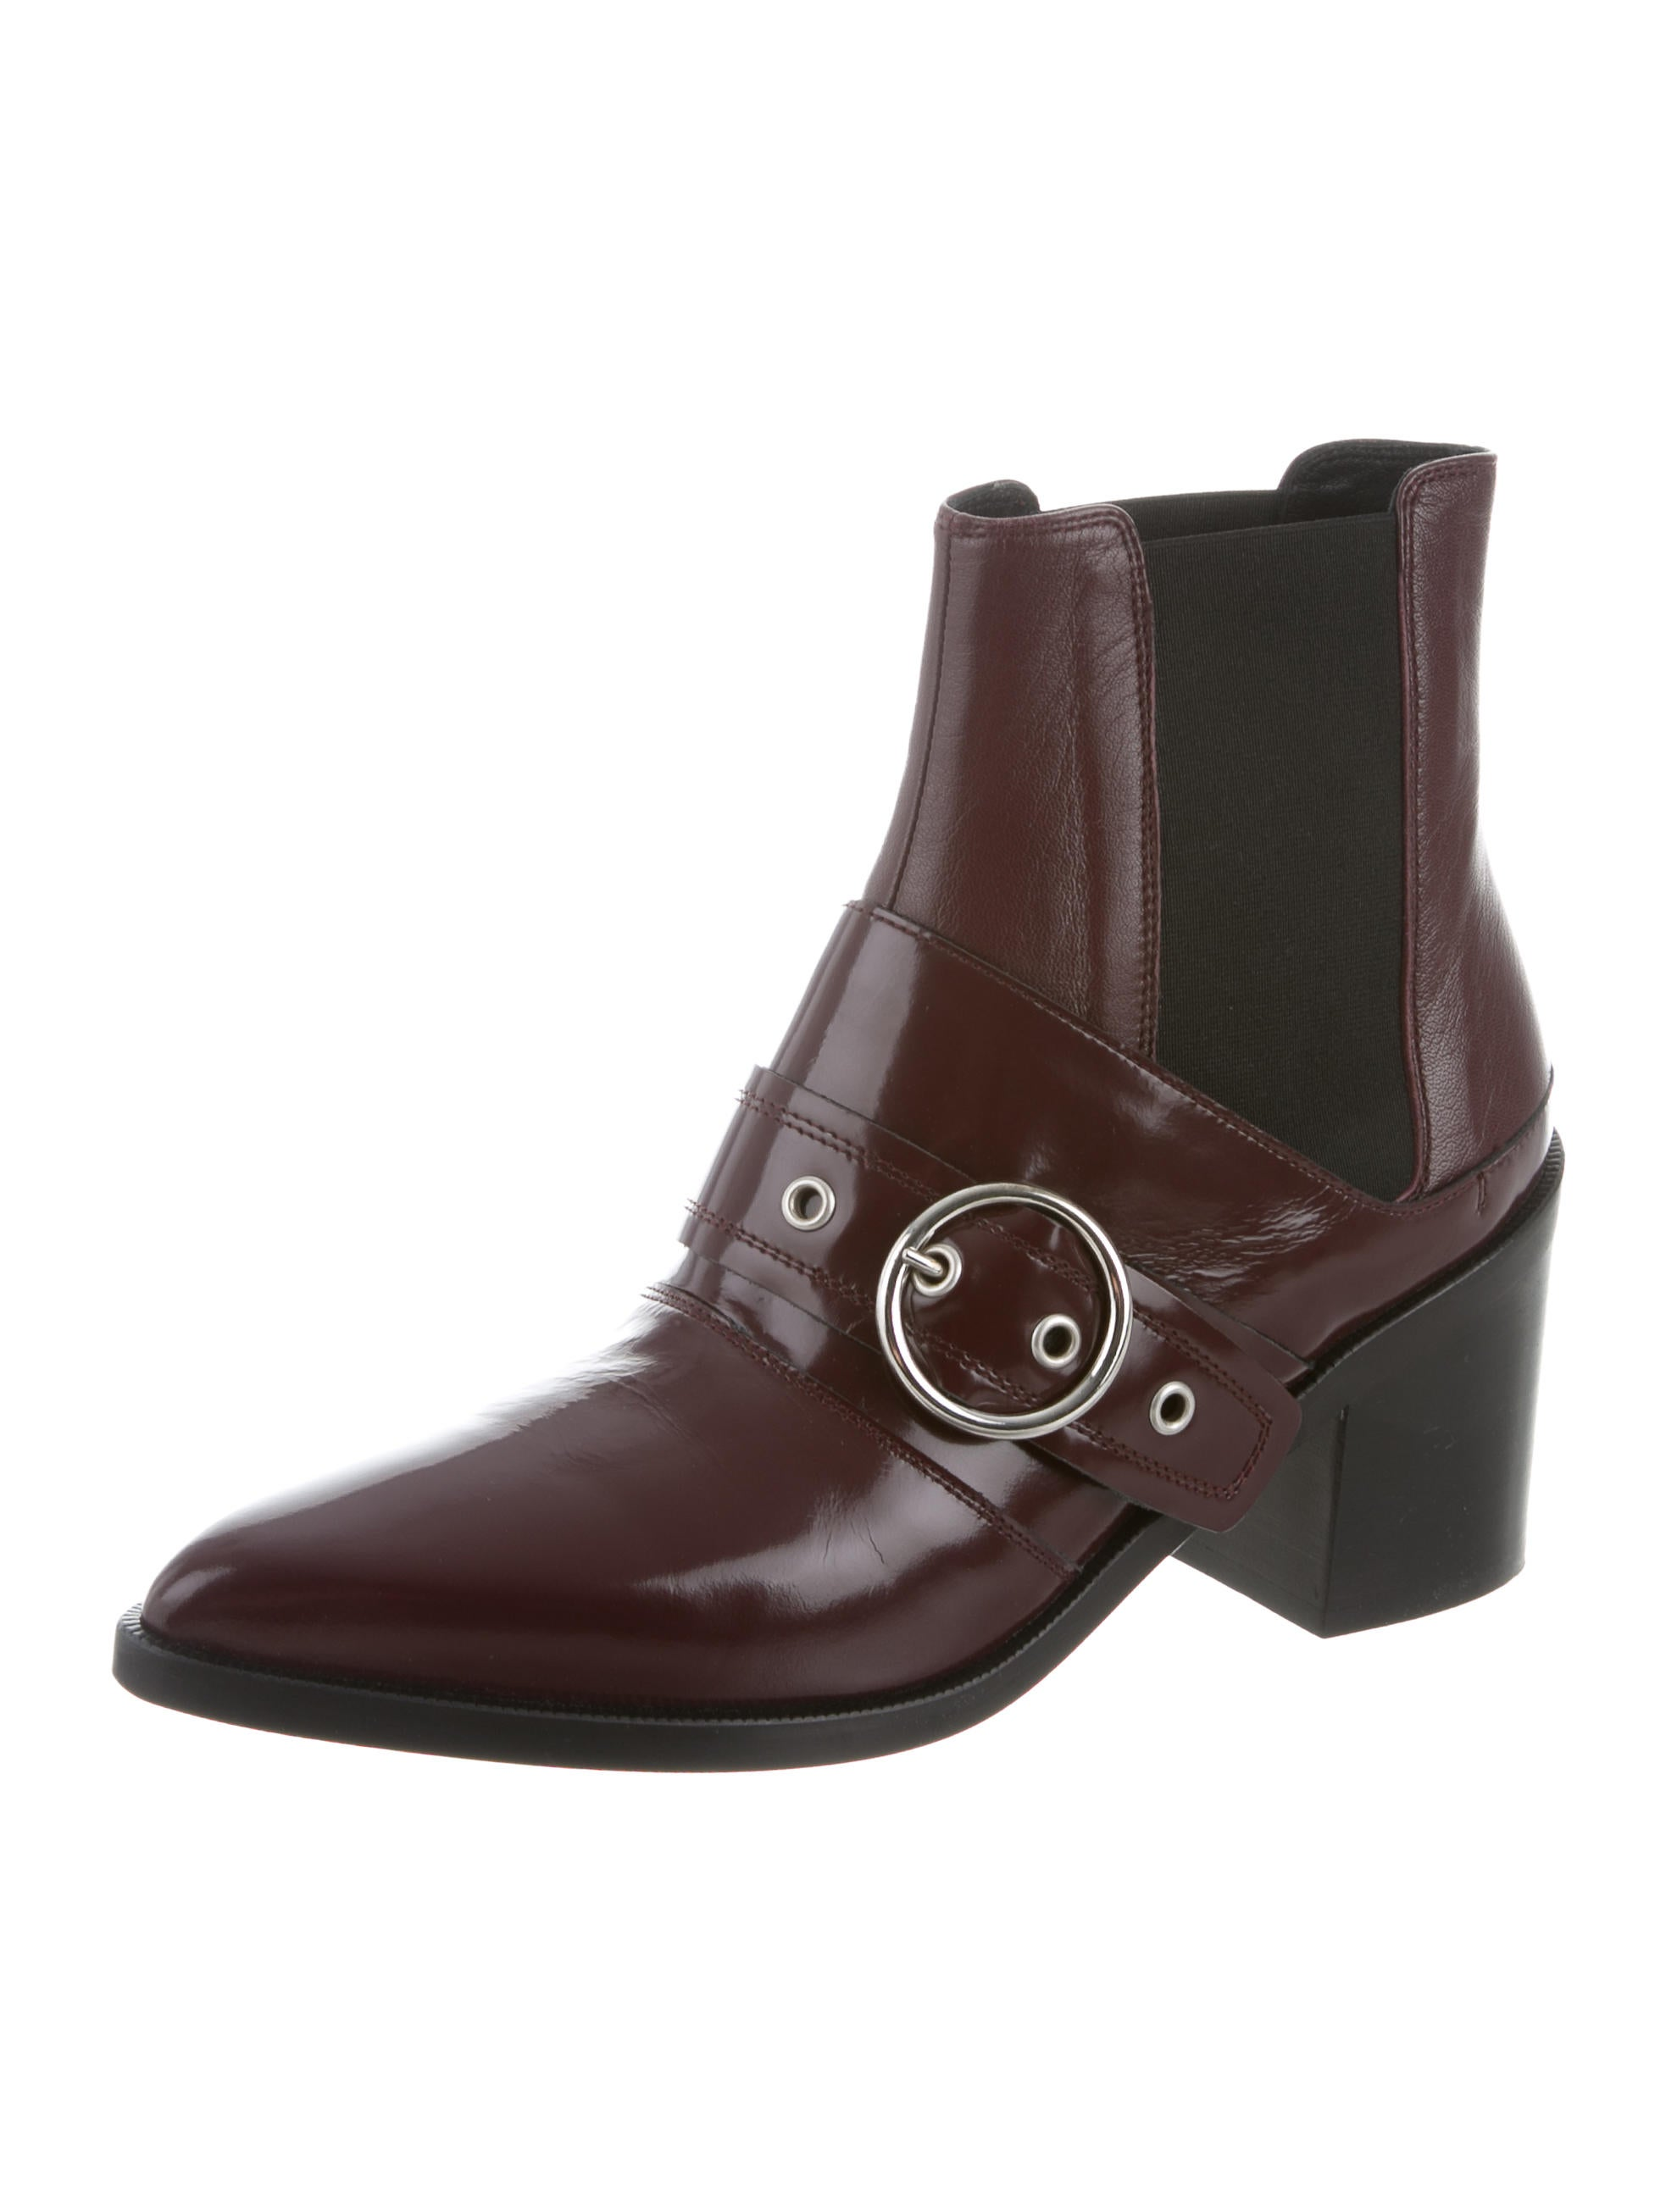 MM6 Maison Margiela MM6 Maison Martin Margiela Buckle-Accented Ankle Boots w/ Tags finishline cheap price cheap sale big discount clearance store sale online free shipping best sale comfortable sale online tUKU3M